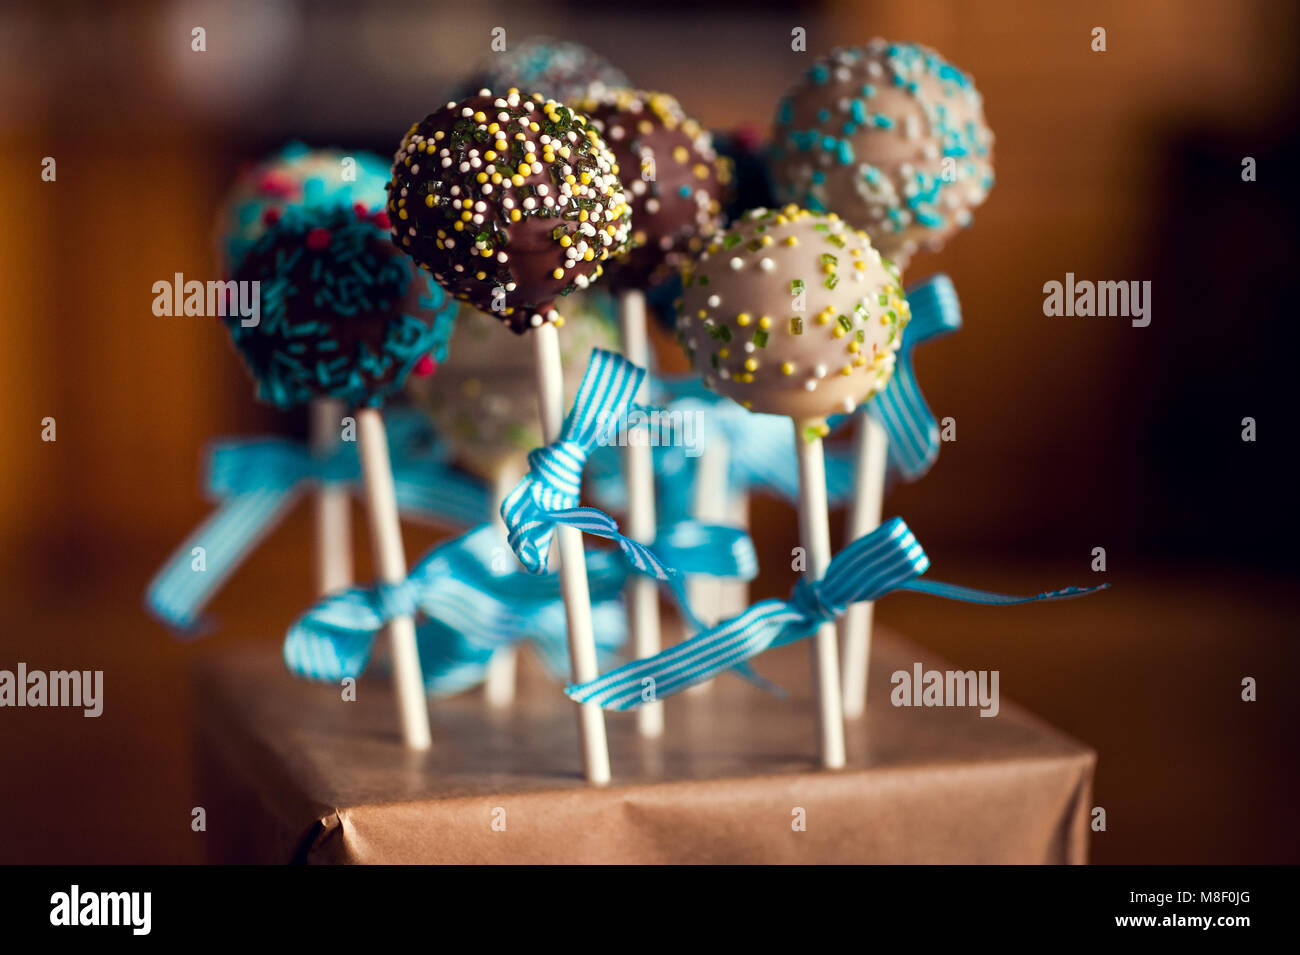 arranged cakepops with sweet little balls prepared to eat - Stock Image